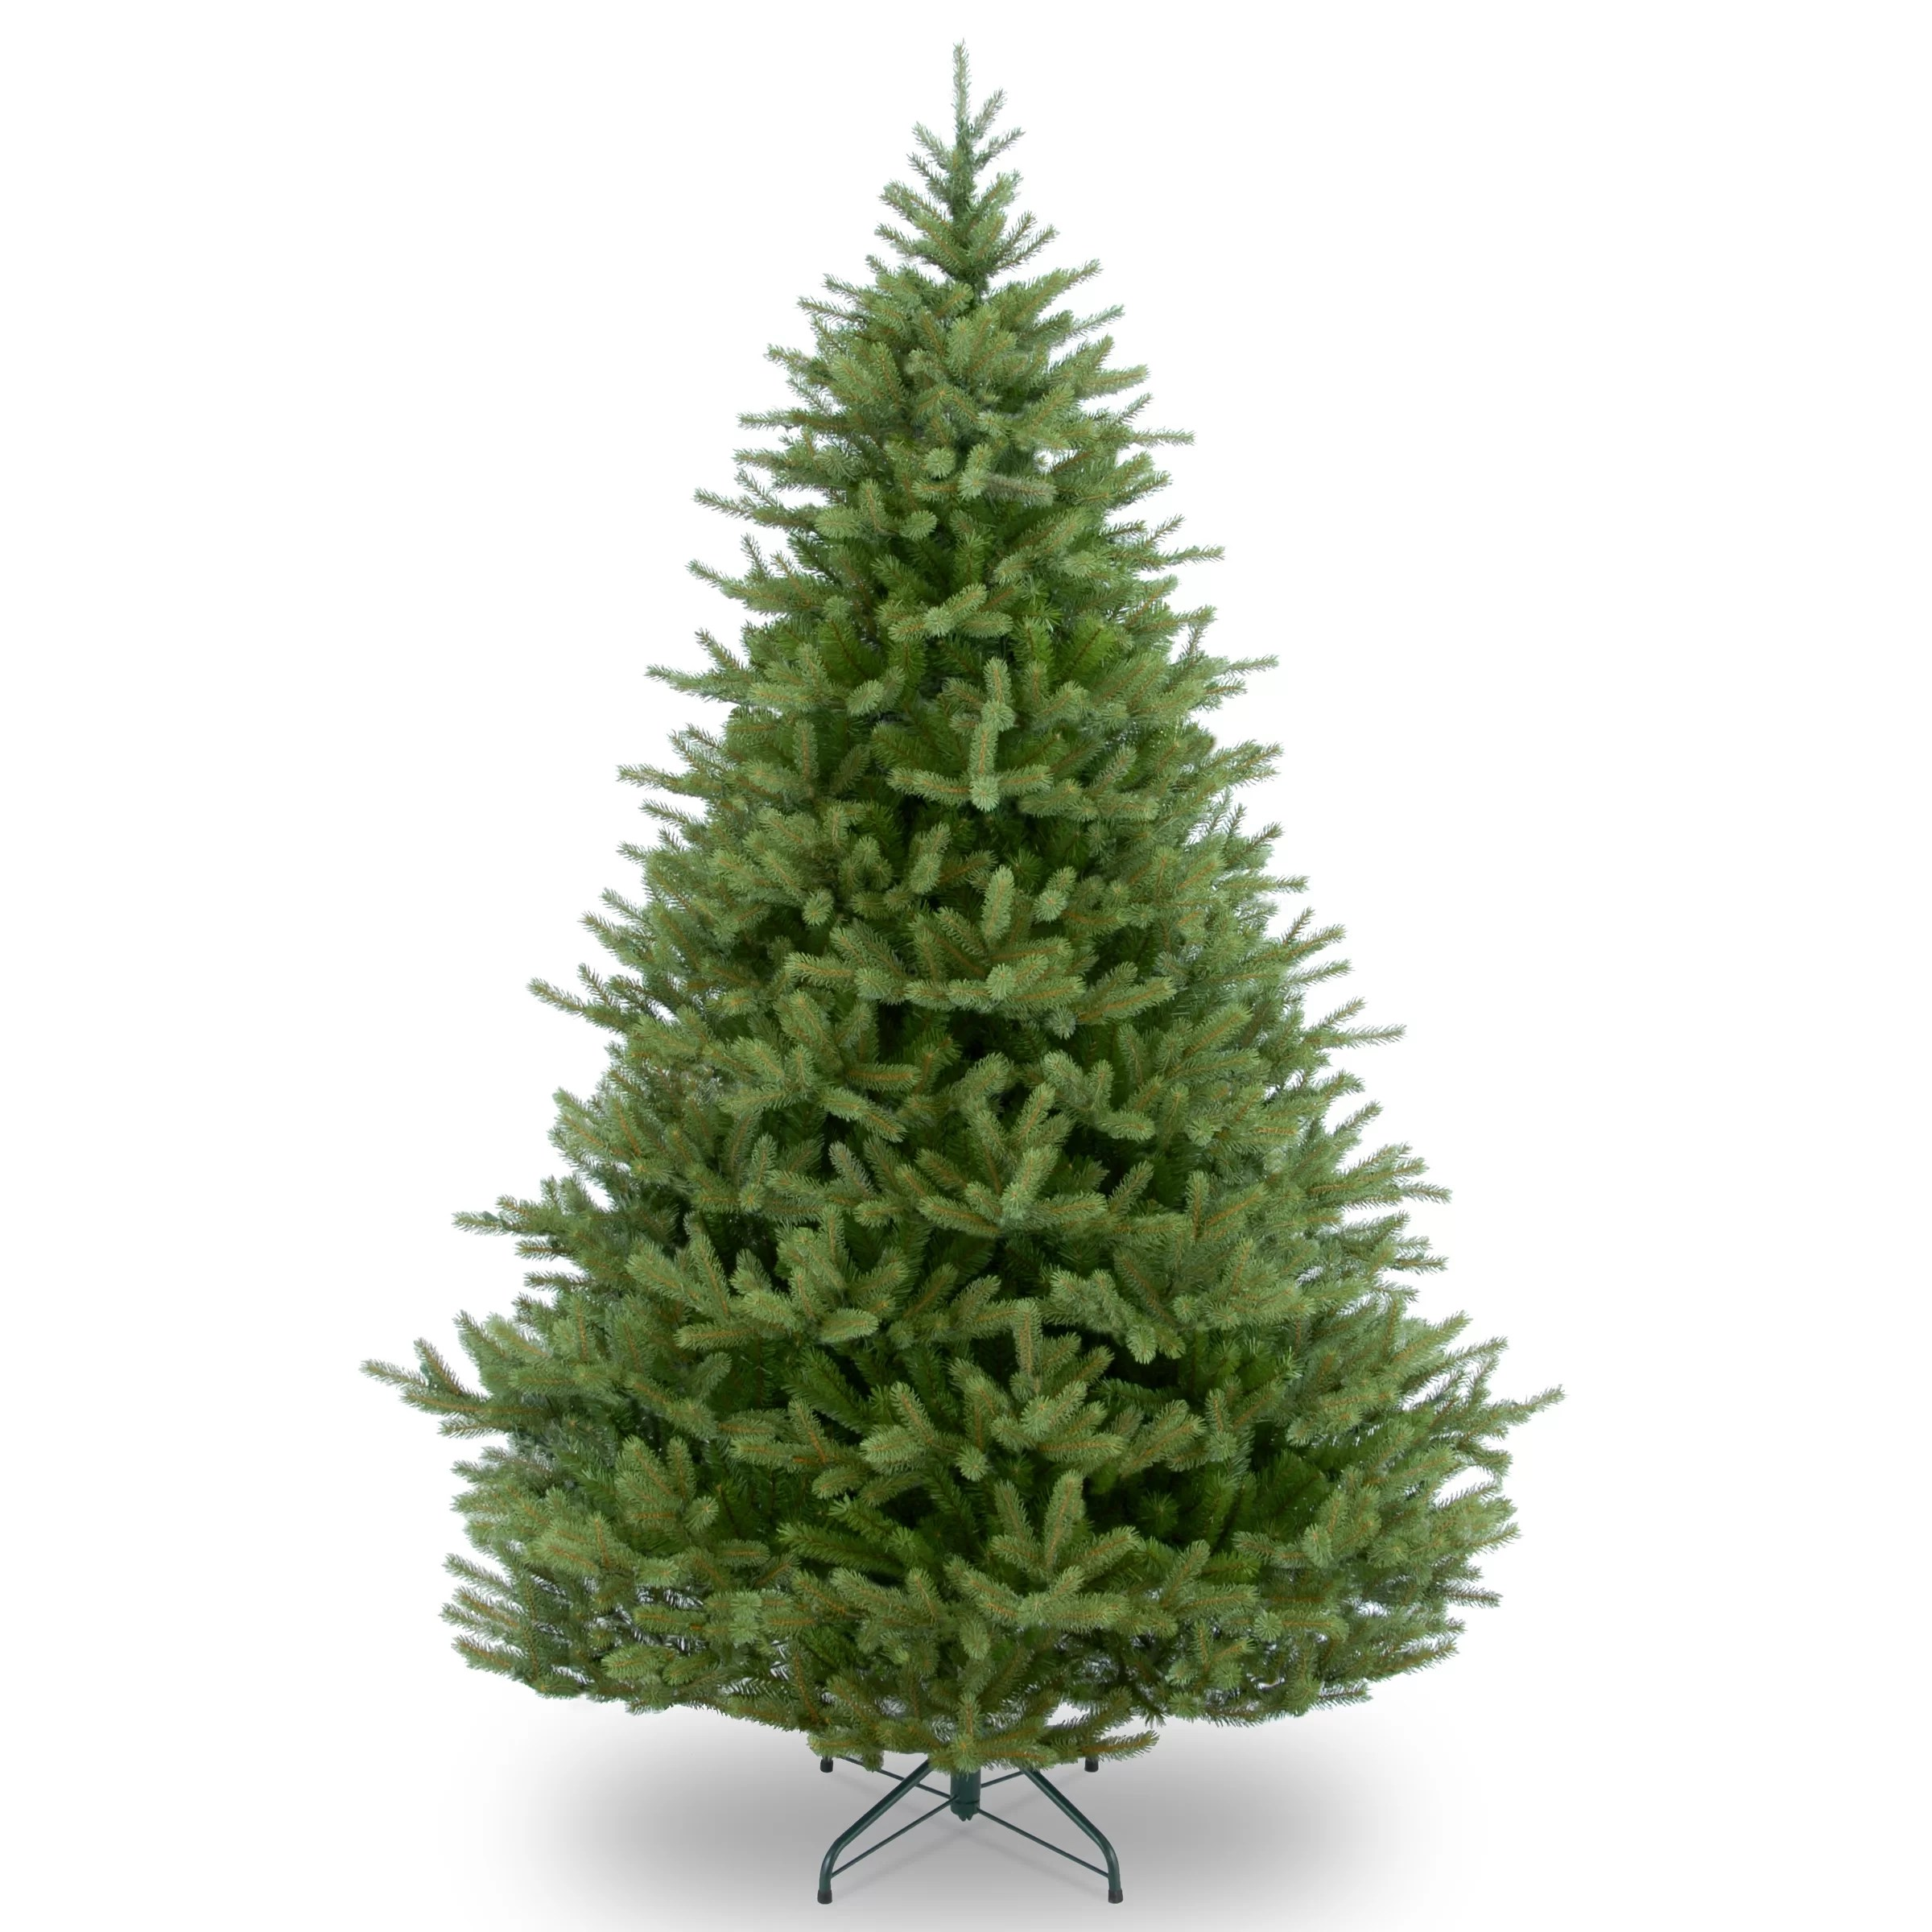 National Tree Co Norway Green Spruce Artificial Christmas Tree Reviews Wayfair Ca